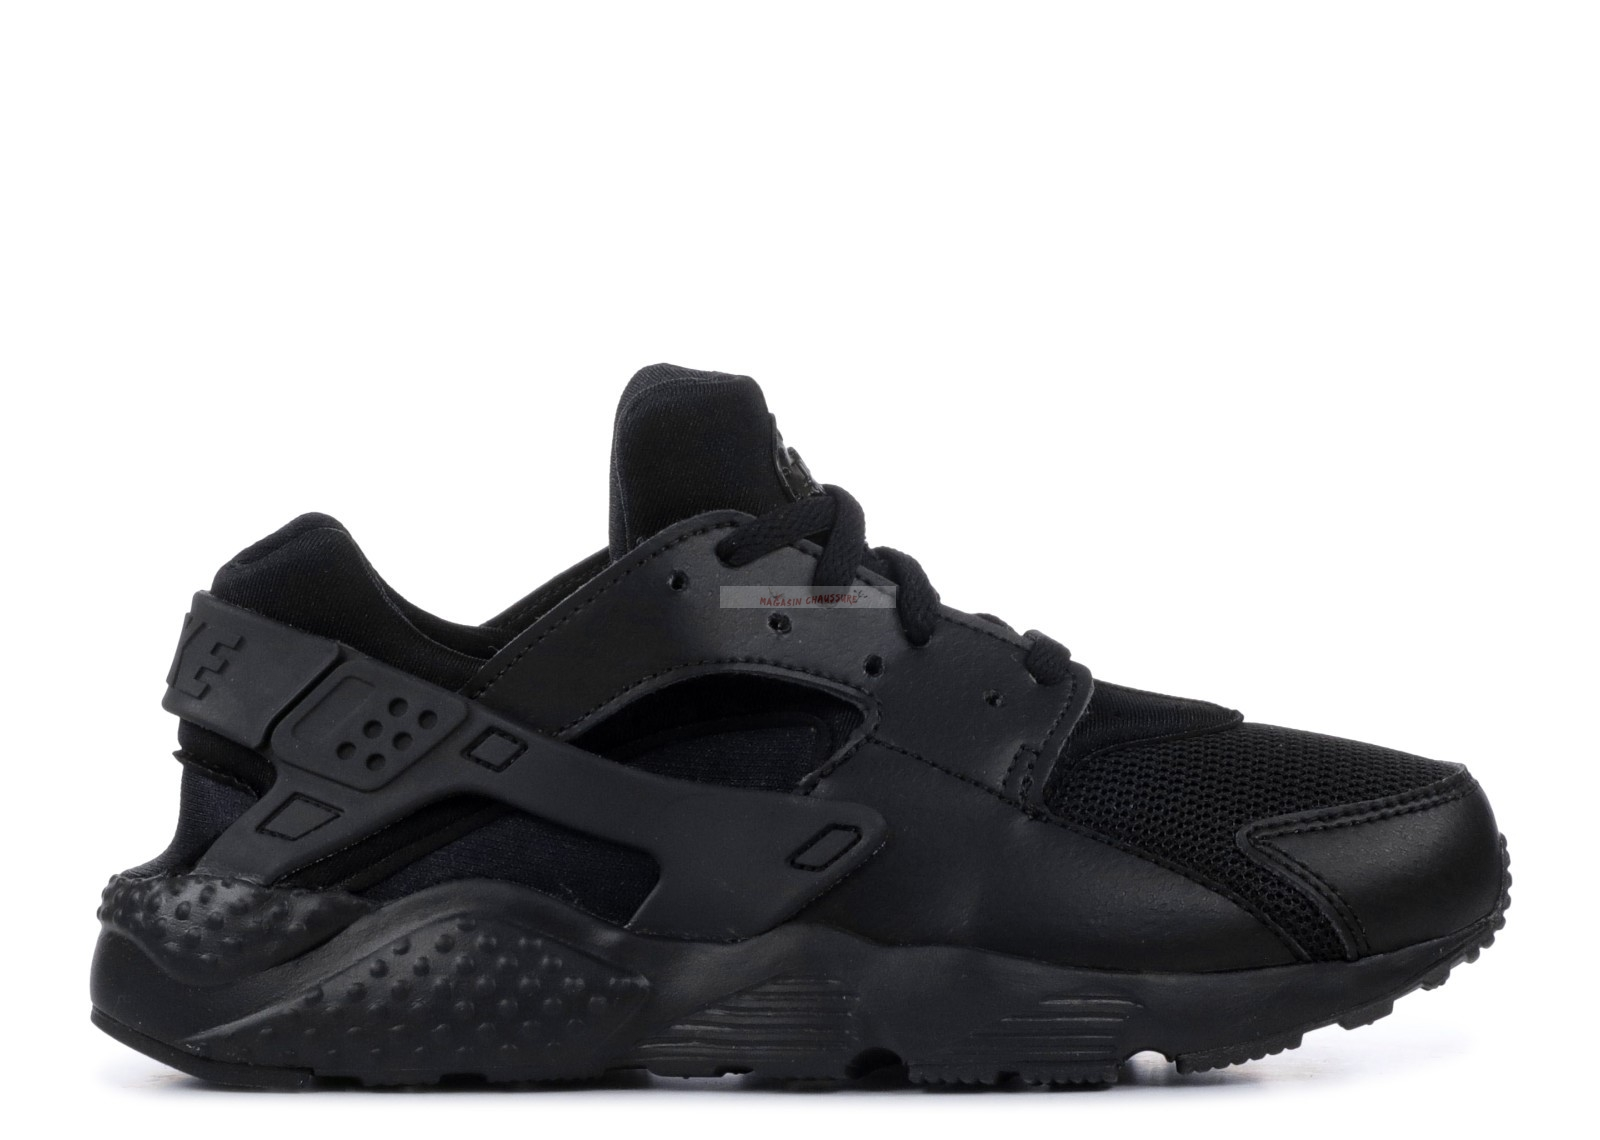 Nike Air Huarache Run Ps Noir (704949-016) Chaussure de Basket